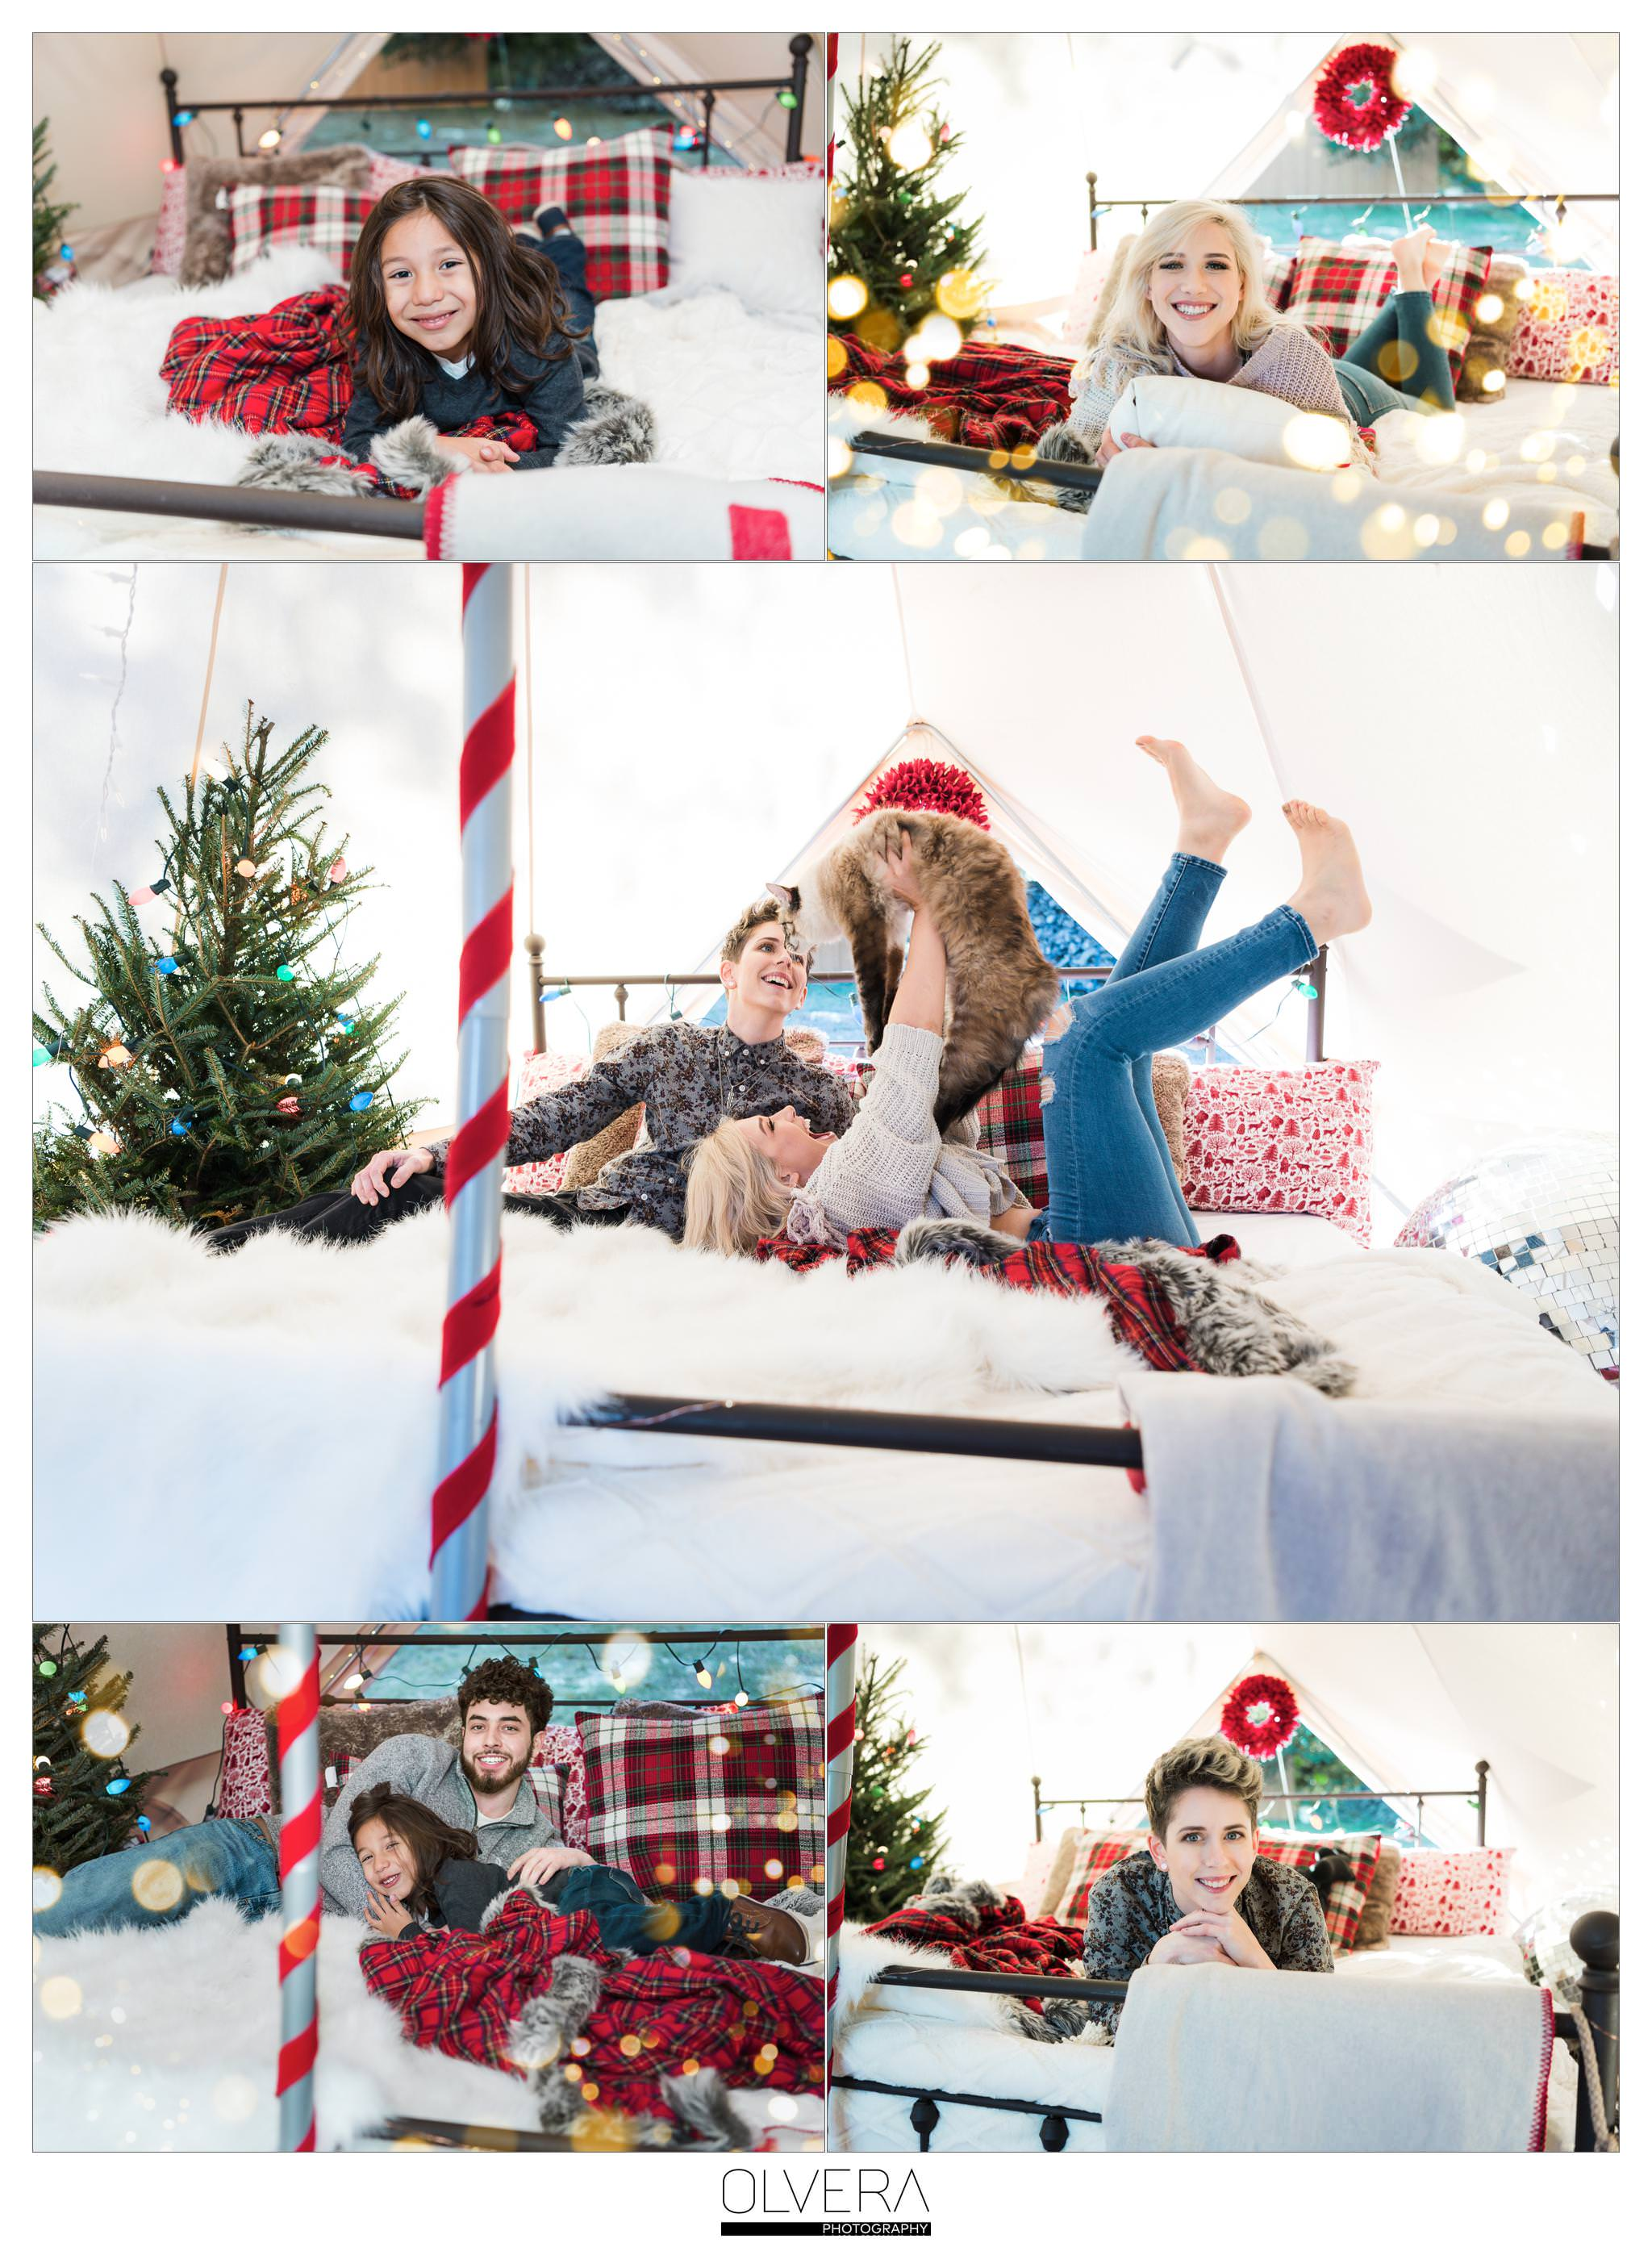 San-Antonio-Mini-Sessions_Christmas-Cabin-Tent_Olvera-Photography-7